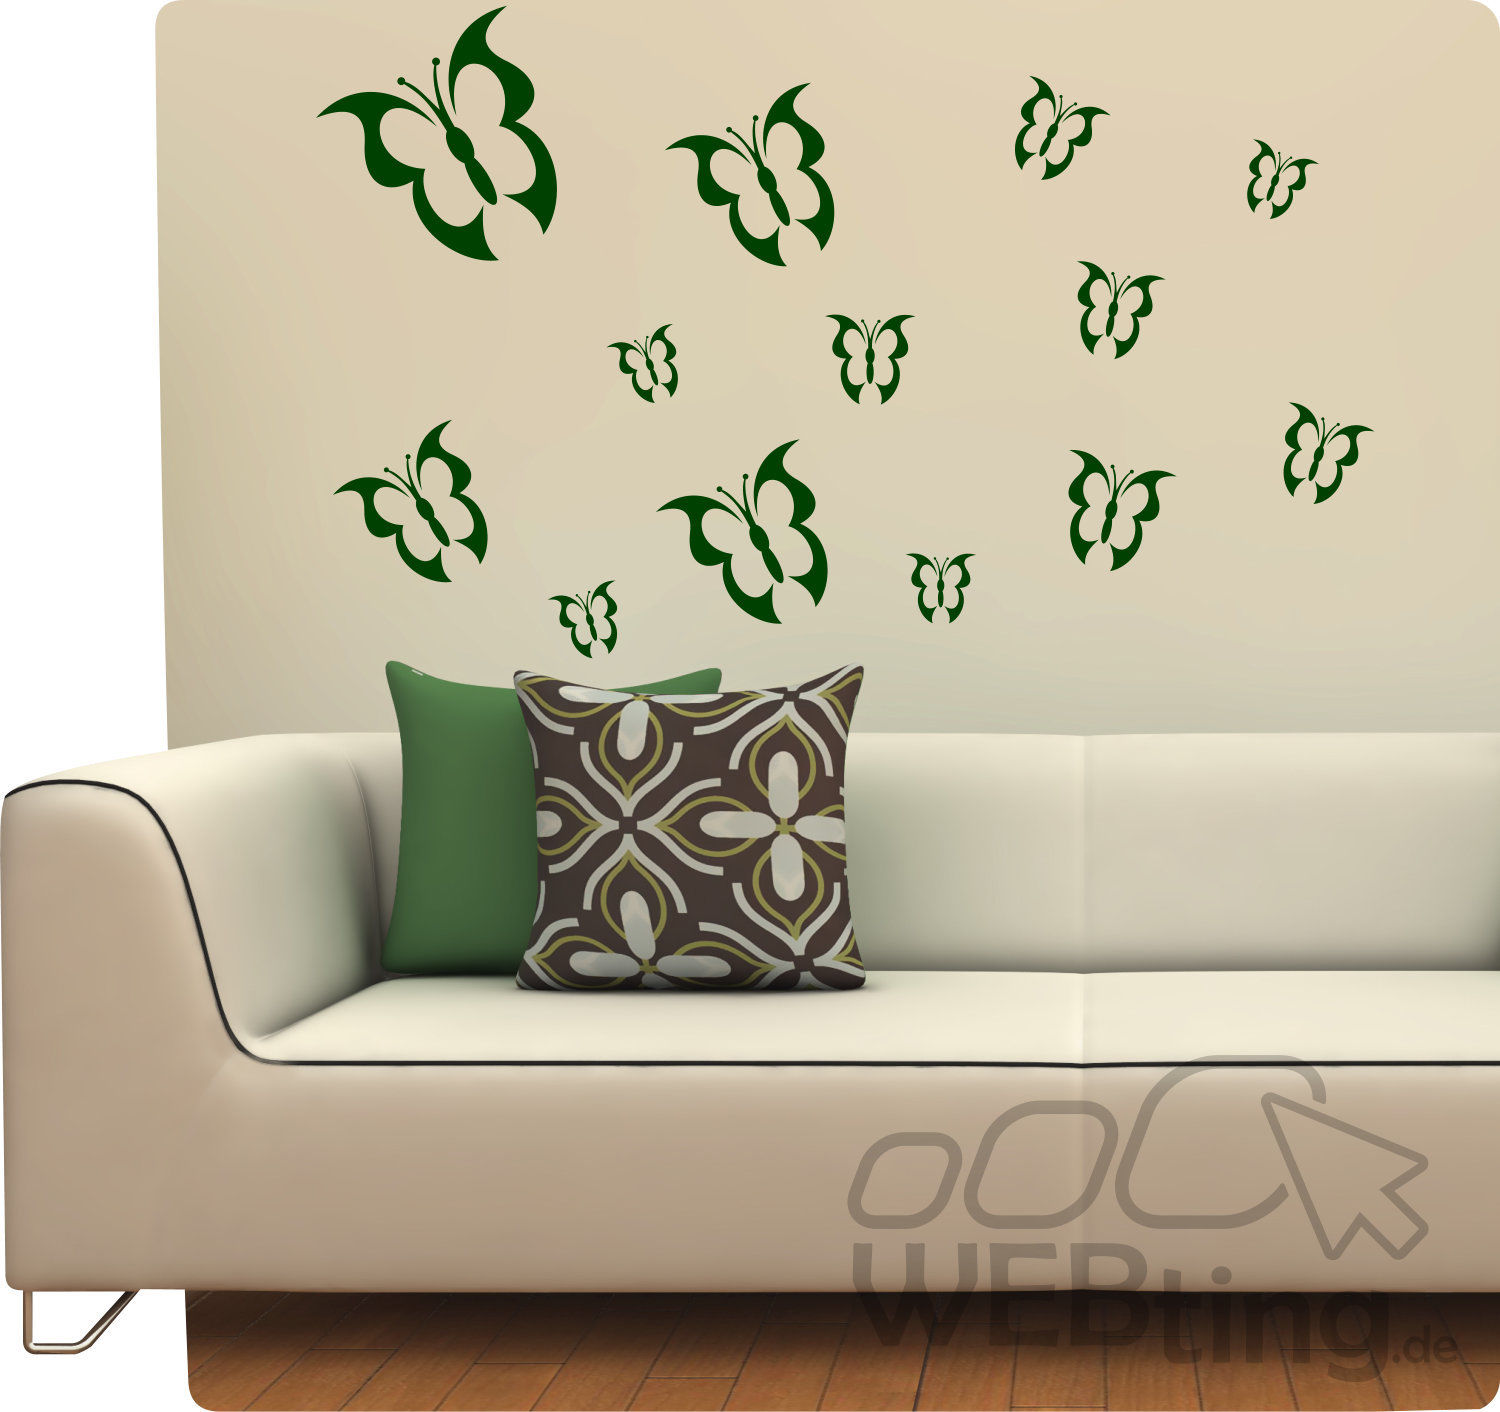 schmetterling wandtattoo wandaufkleber aufkleber deko sticker ranke butterfly. Black Bedroom Furniture Sets. Home Design Ideas